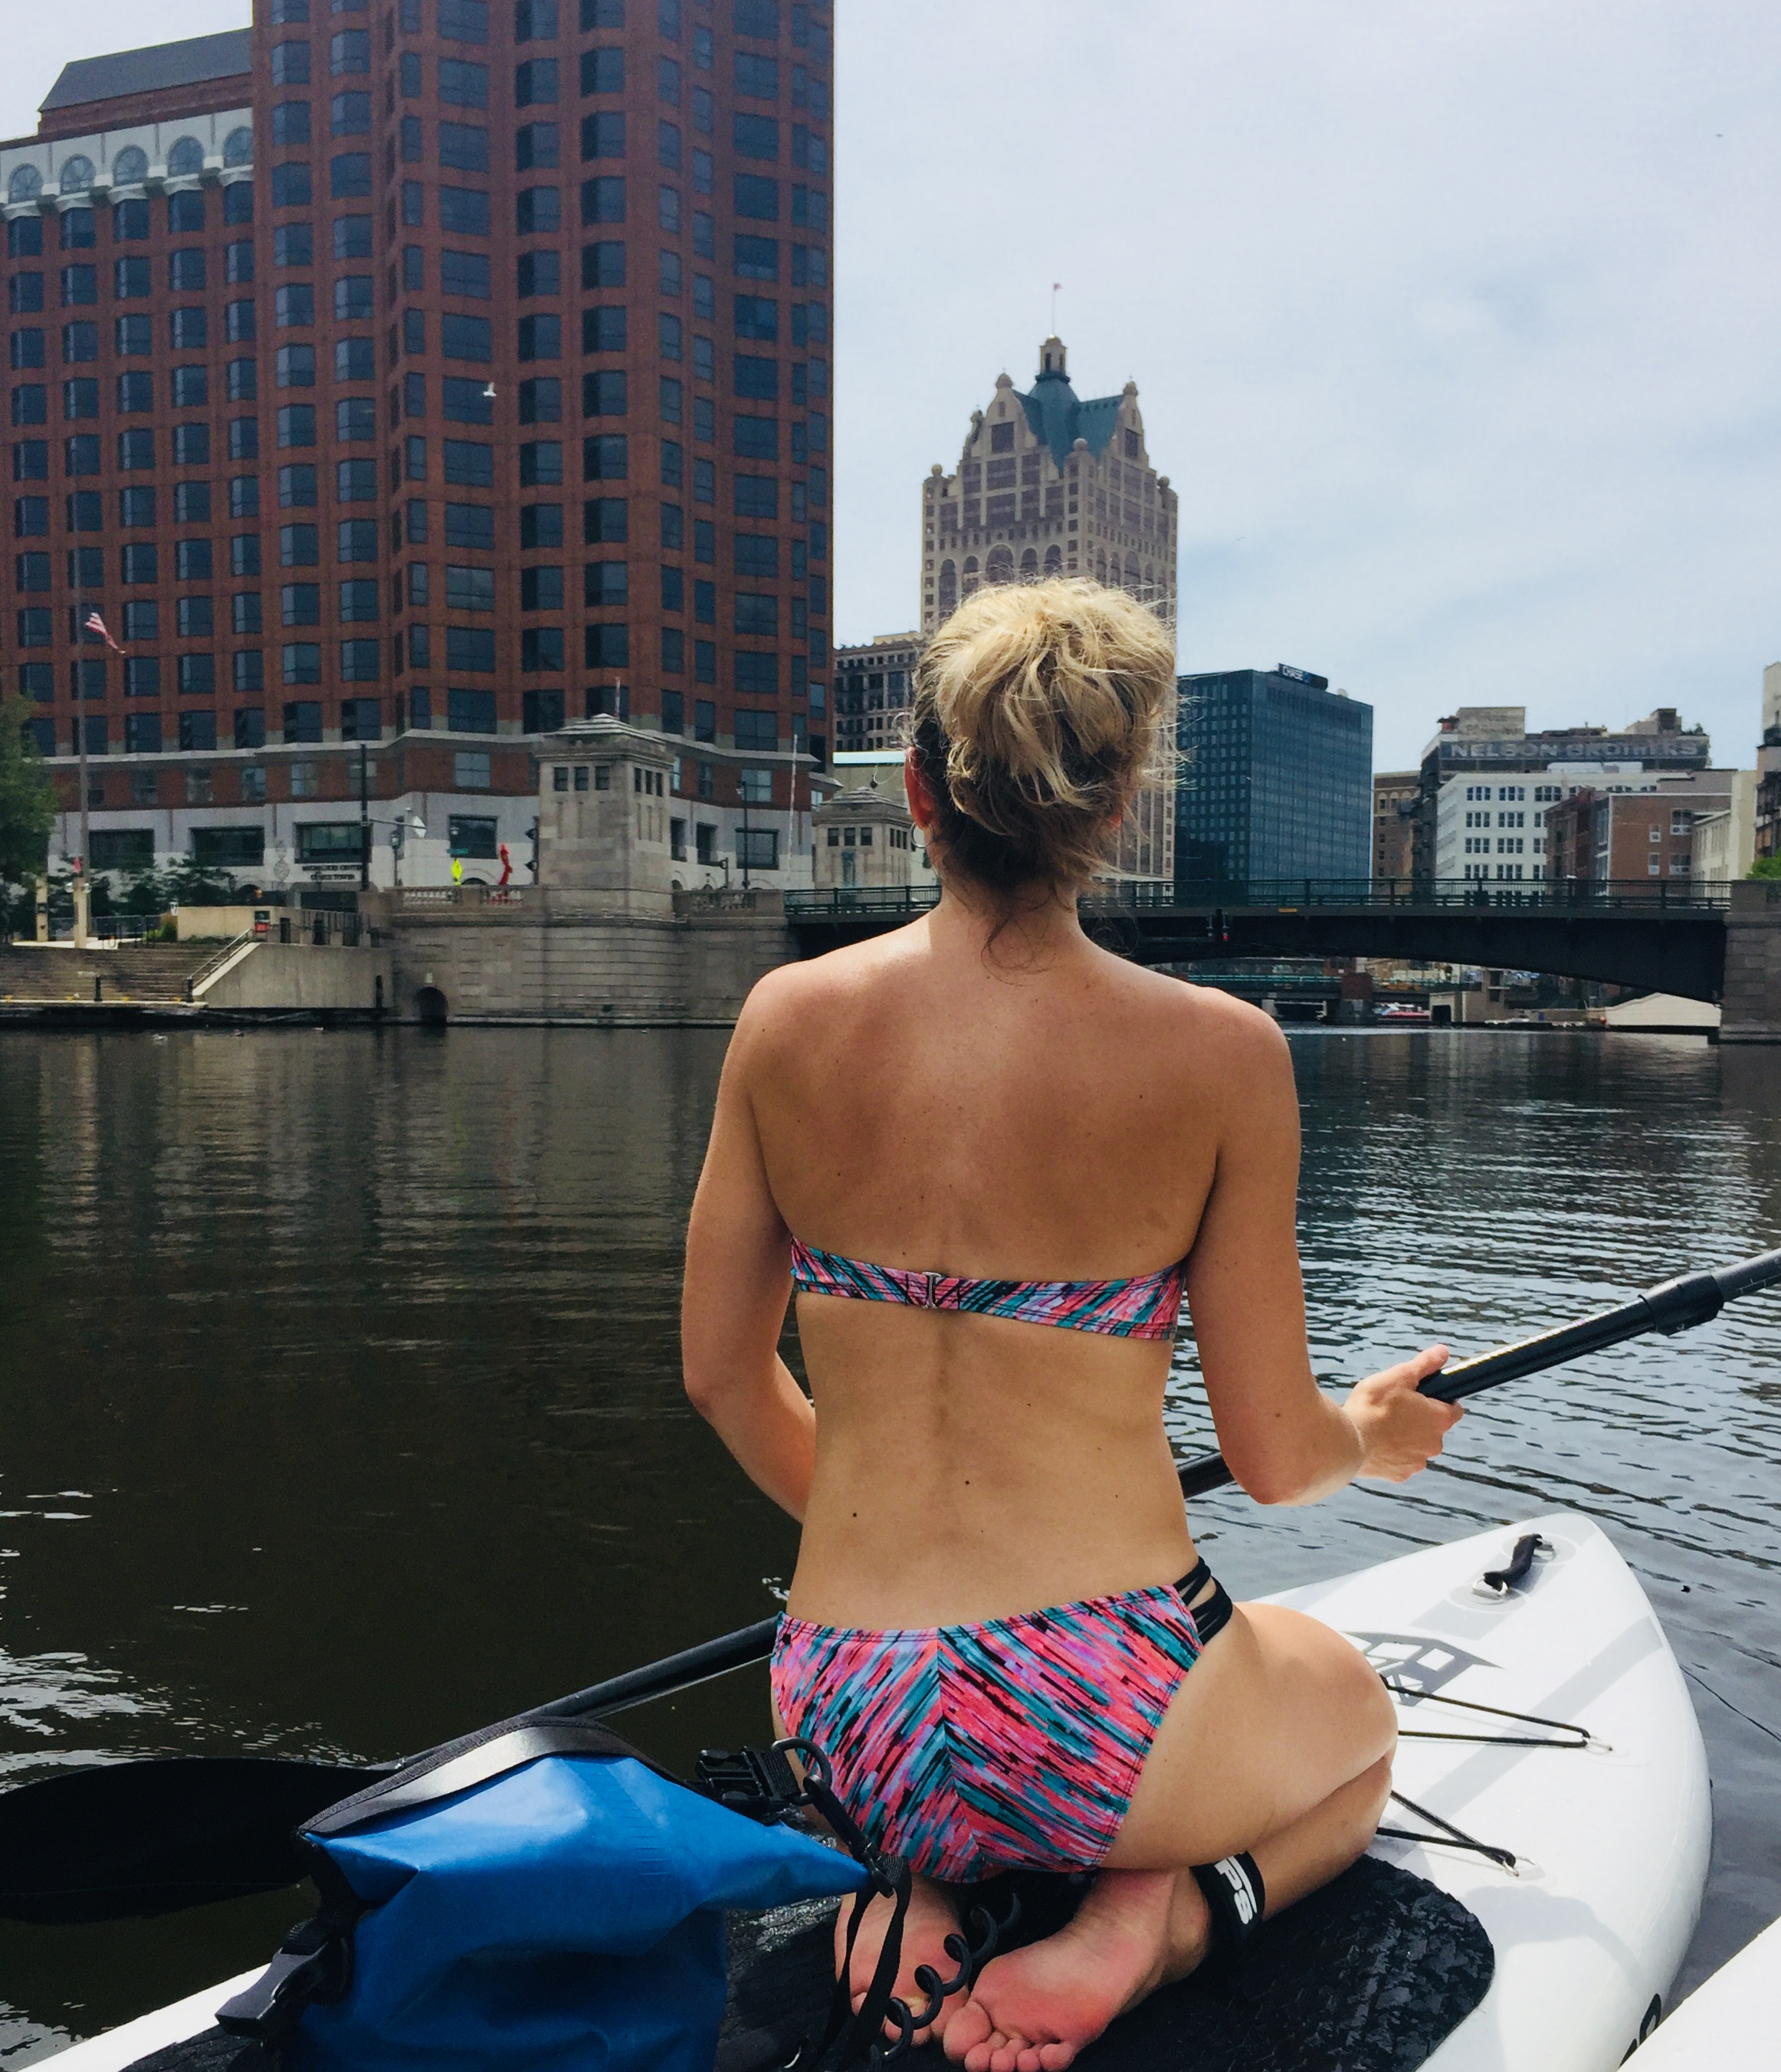 Admiring the city skyline from the Milwaukee River